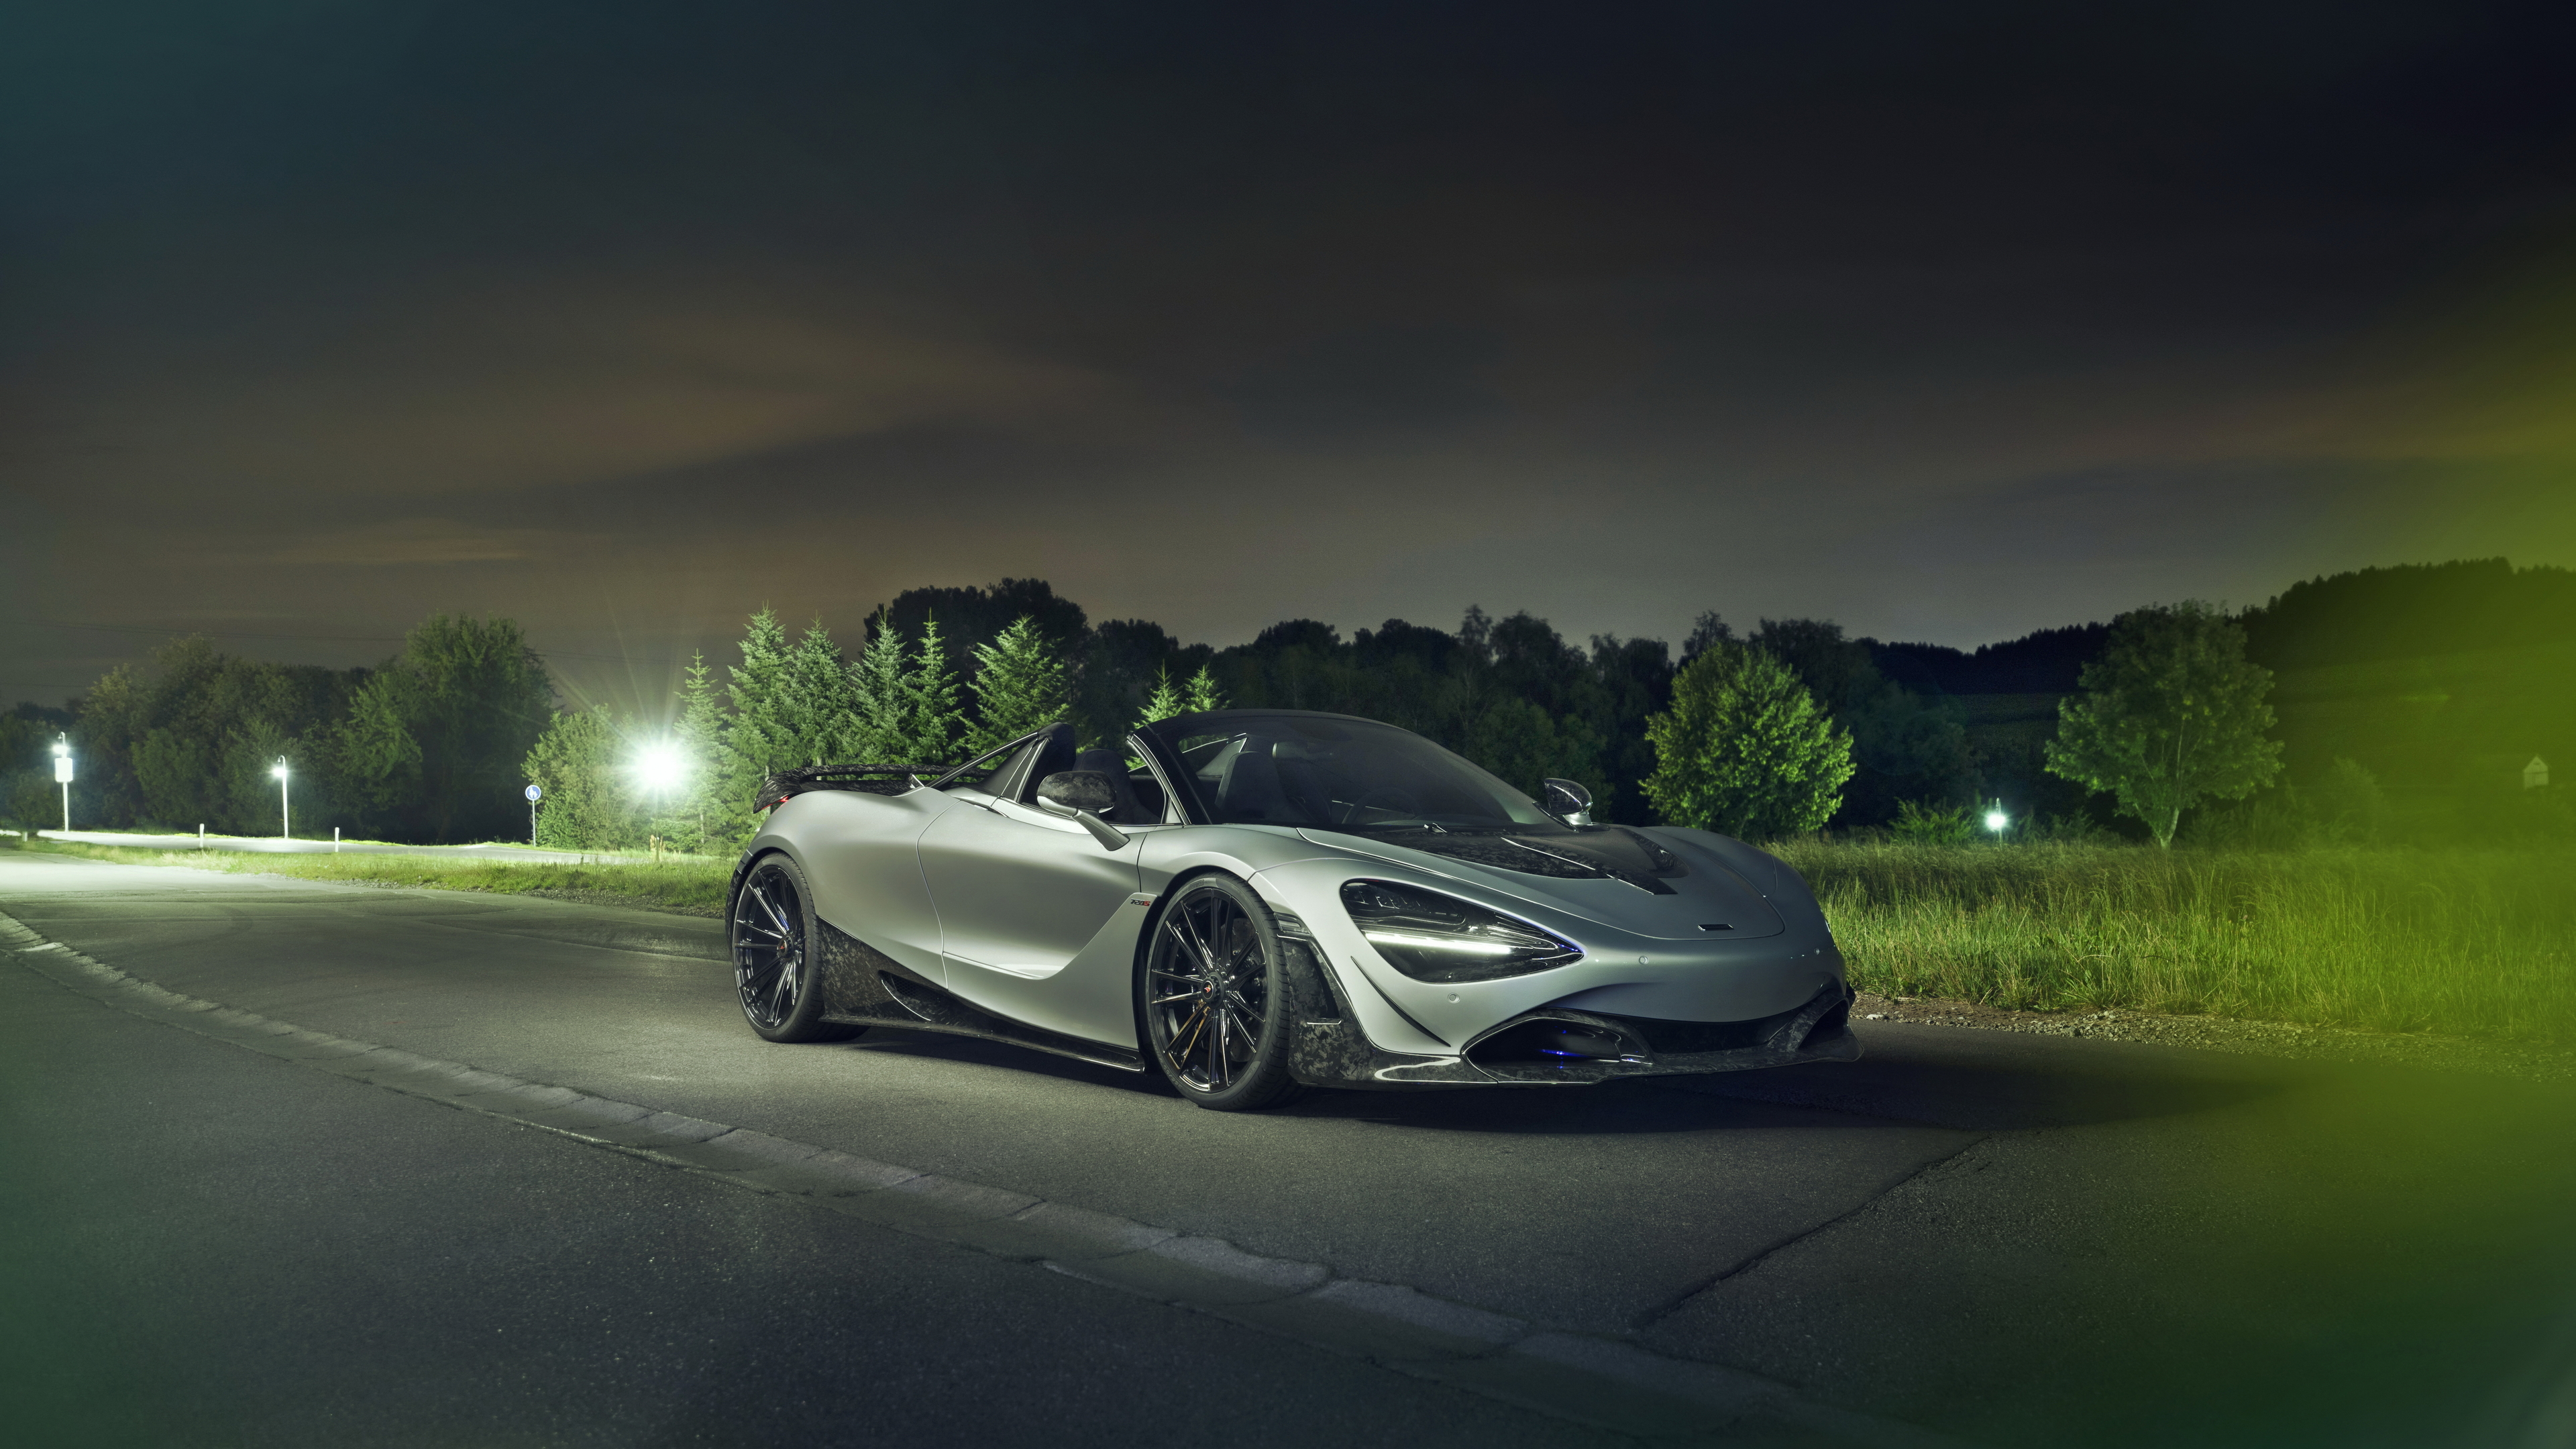 novitec mclaren 720s spider 2019 1569189238 - Novitec McLaren 720S Spider 2019 - mclaren wallpapers, mclaren 720s wallpapers, hd-wallpapers, cars wallpapers, 5k wallpapers, 4k-wallpapers, 2019 cars wallpapers